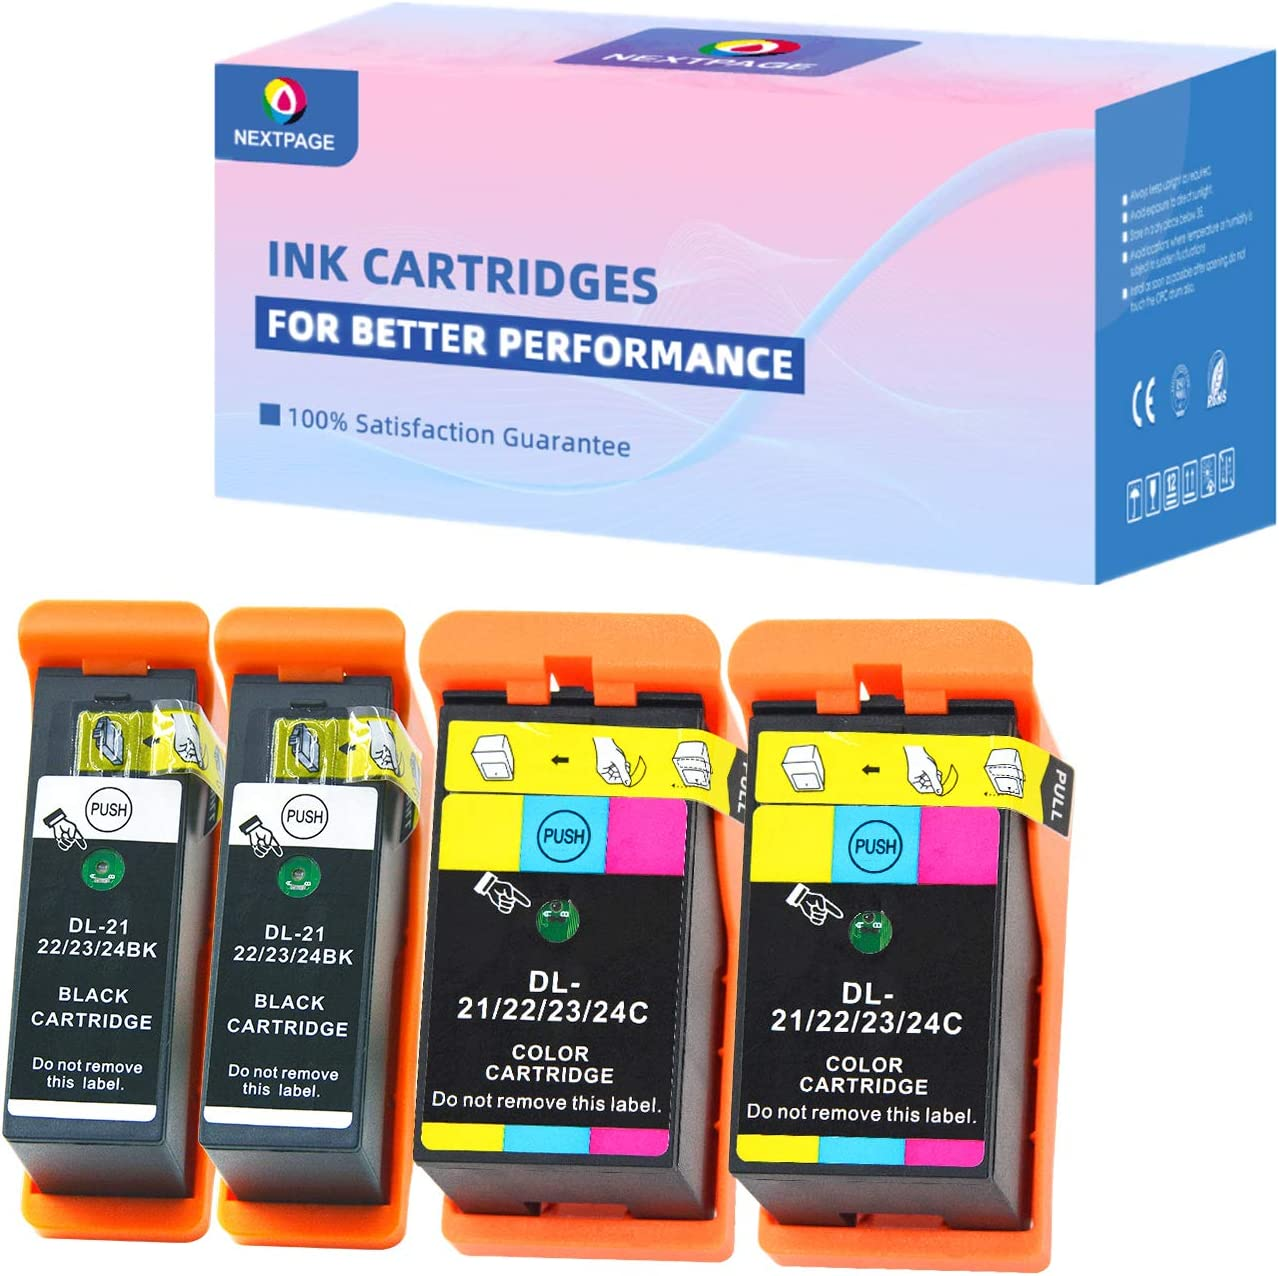 NEXTPAGE Dell Series 21 Ink Cartridges Replacement for DELL V313 V313W V515W P513W P713W V715W Printers